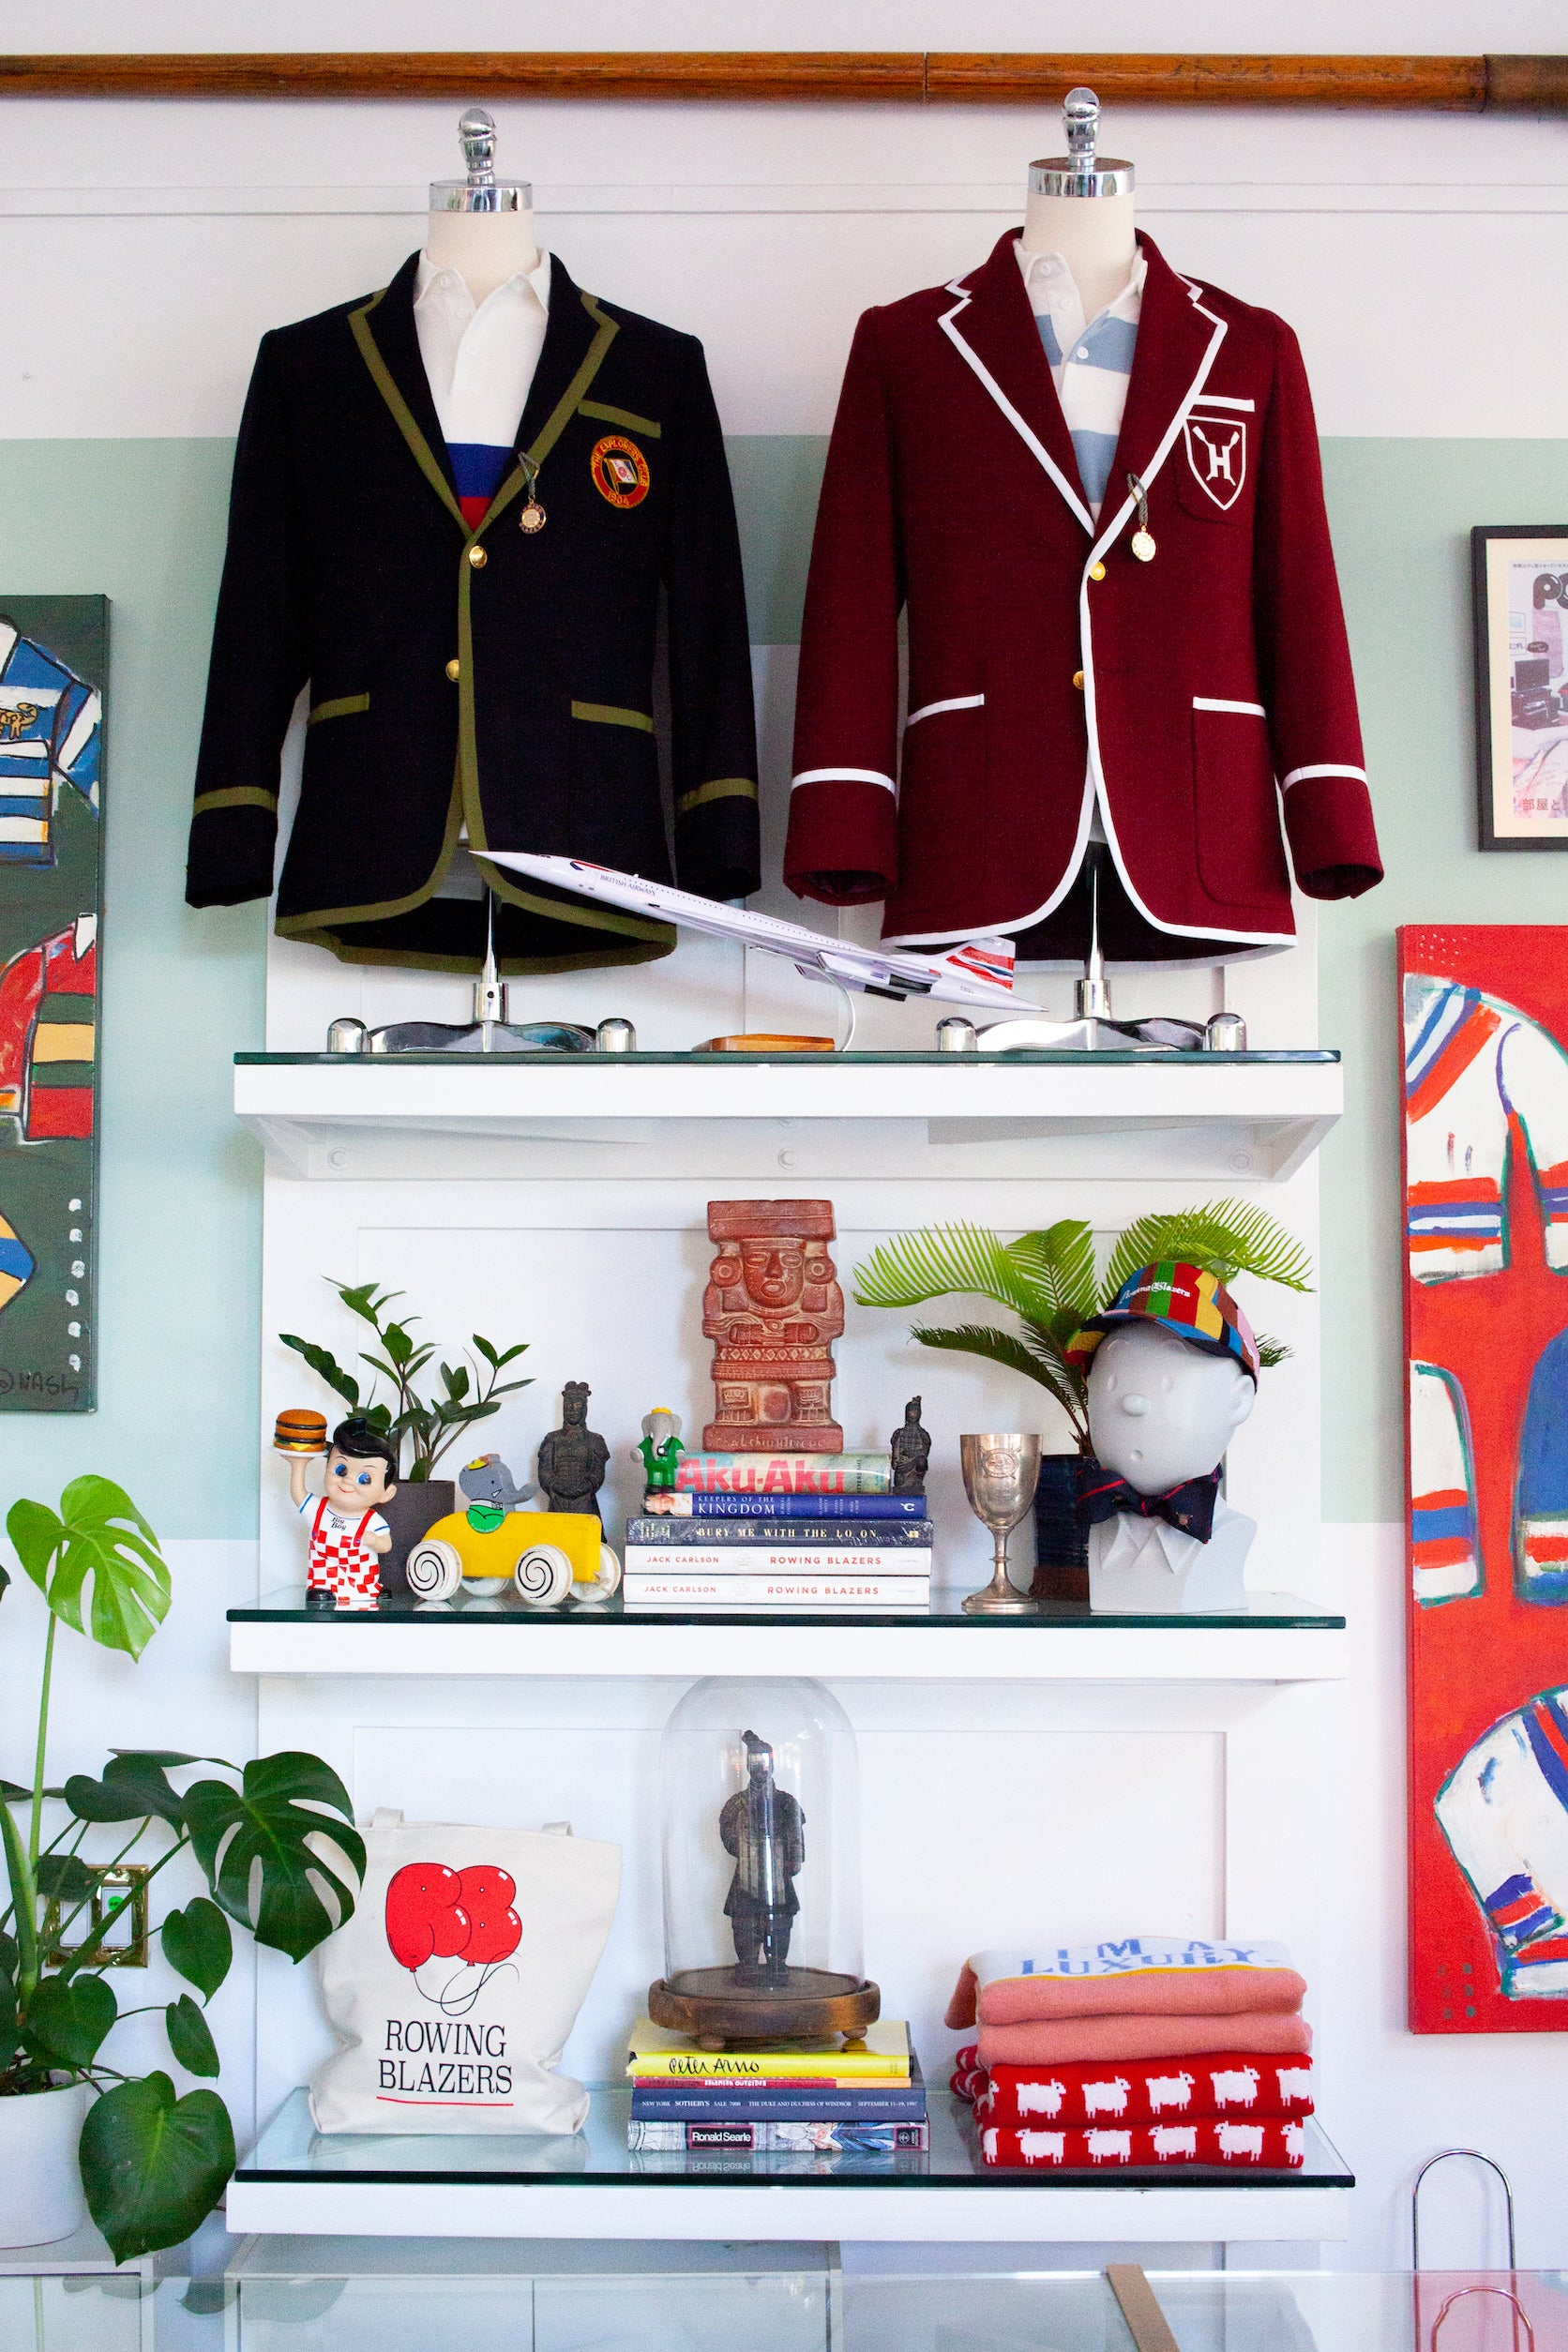 Close-up of 2 blazers inside of the Rowing Blazers Store on Grand Street